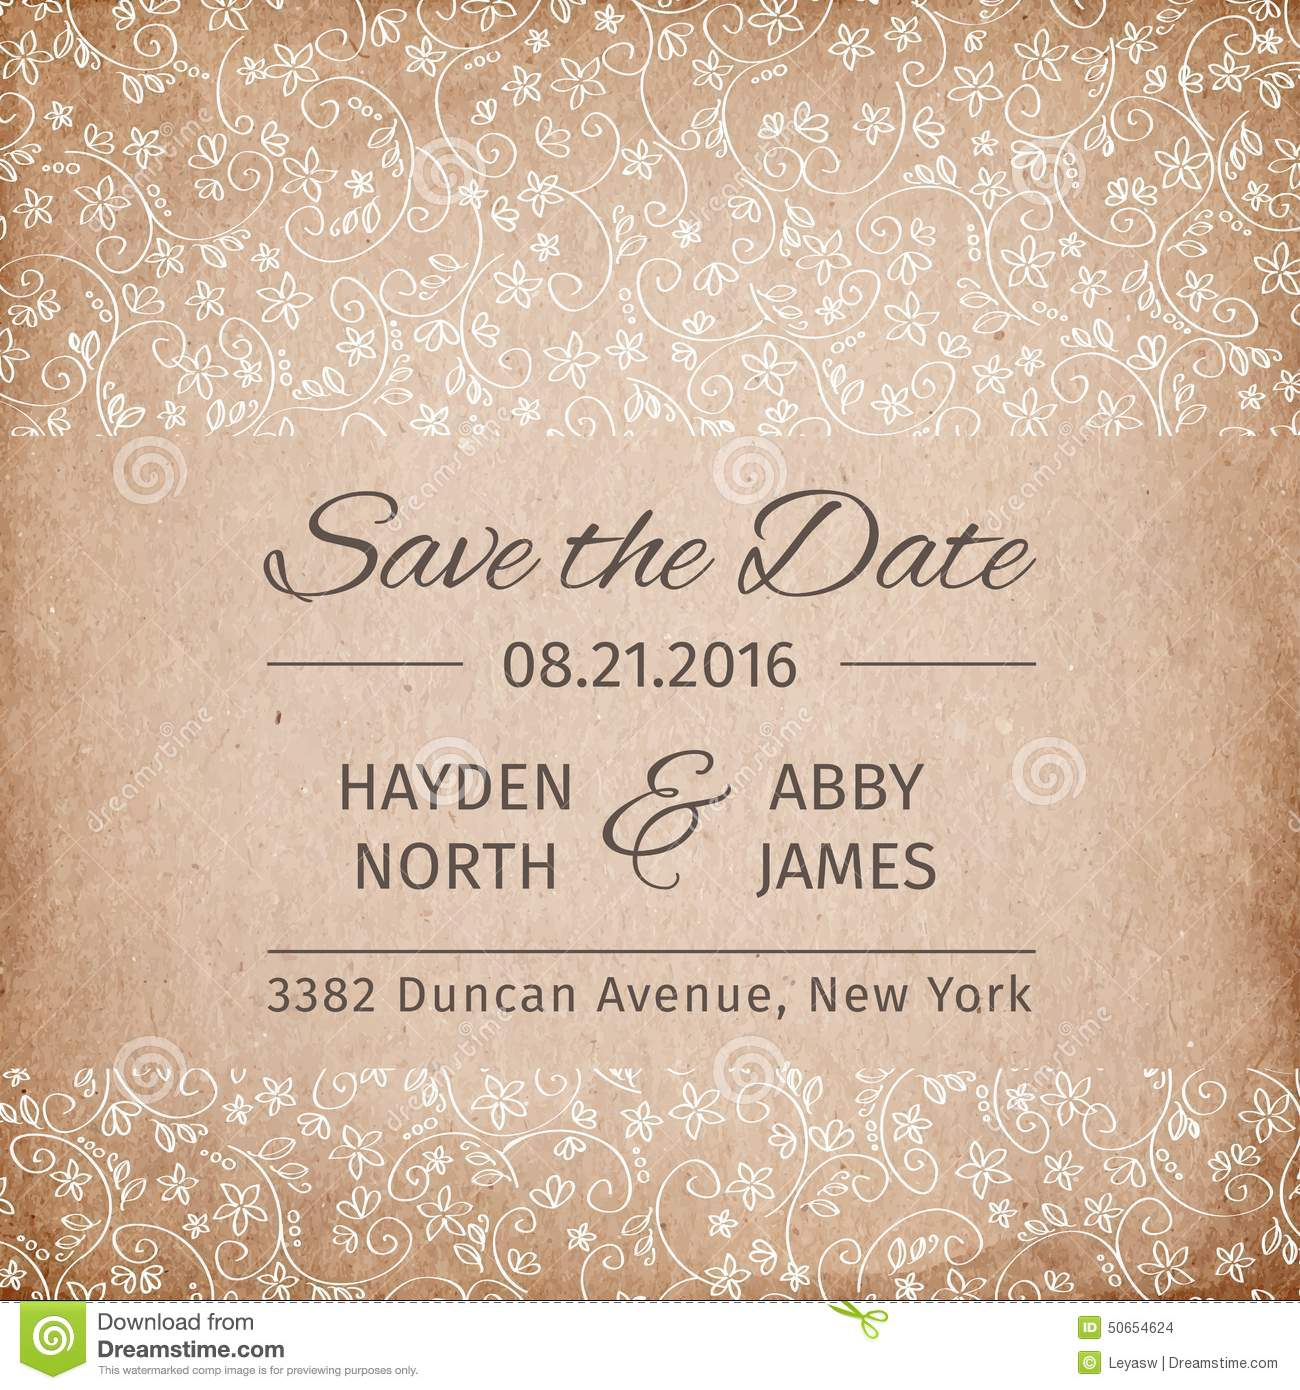 Save the date wedding invitation template vintage paper for Save the date templates free download